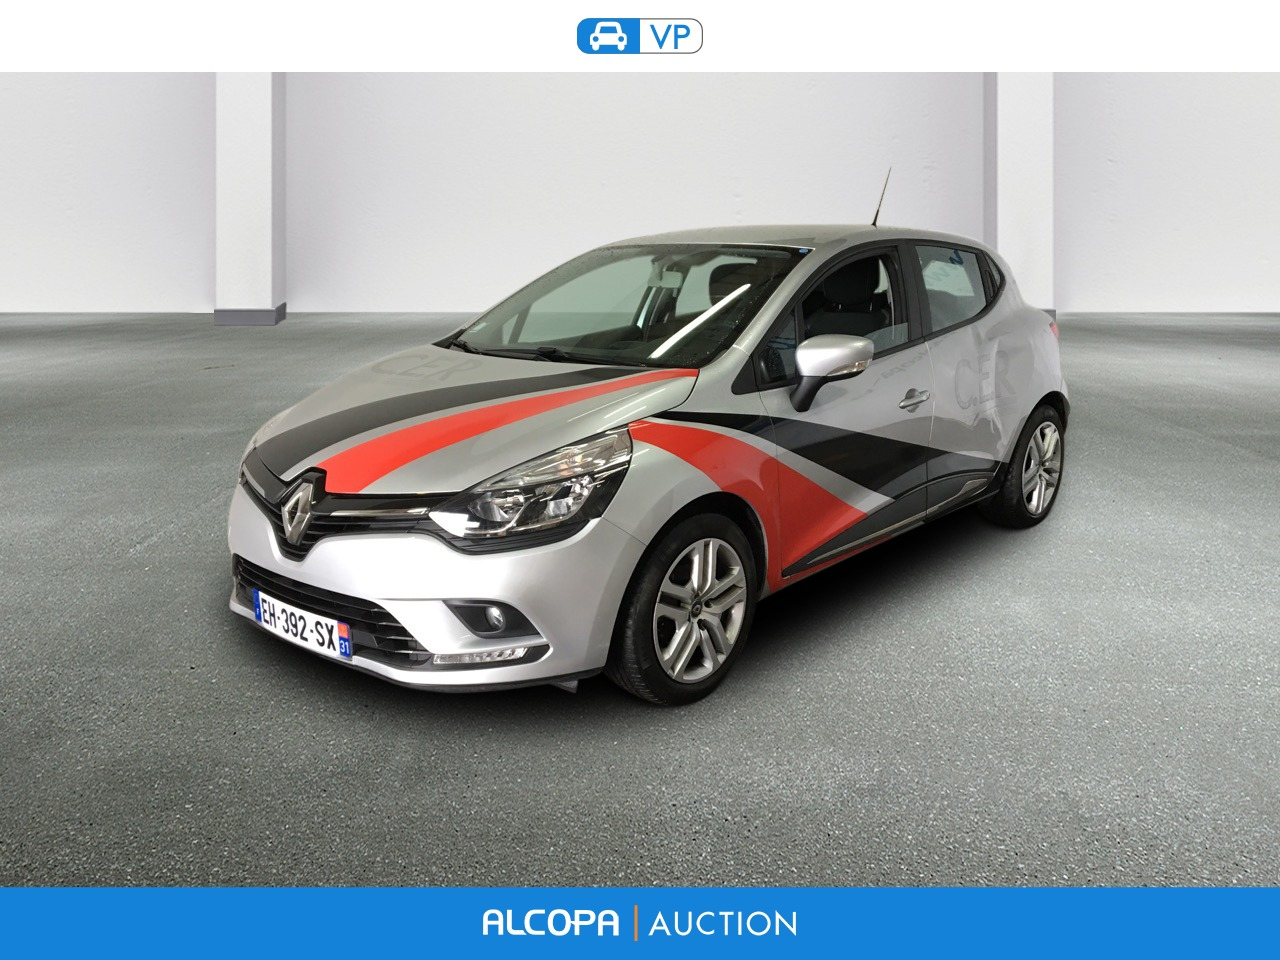 renault clio iv 07 2016 clio dci 75 energy business alcopa auction. Black Bedroom Furniture Sets. Home Design Ideas